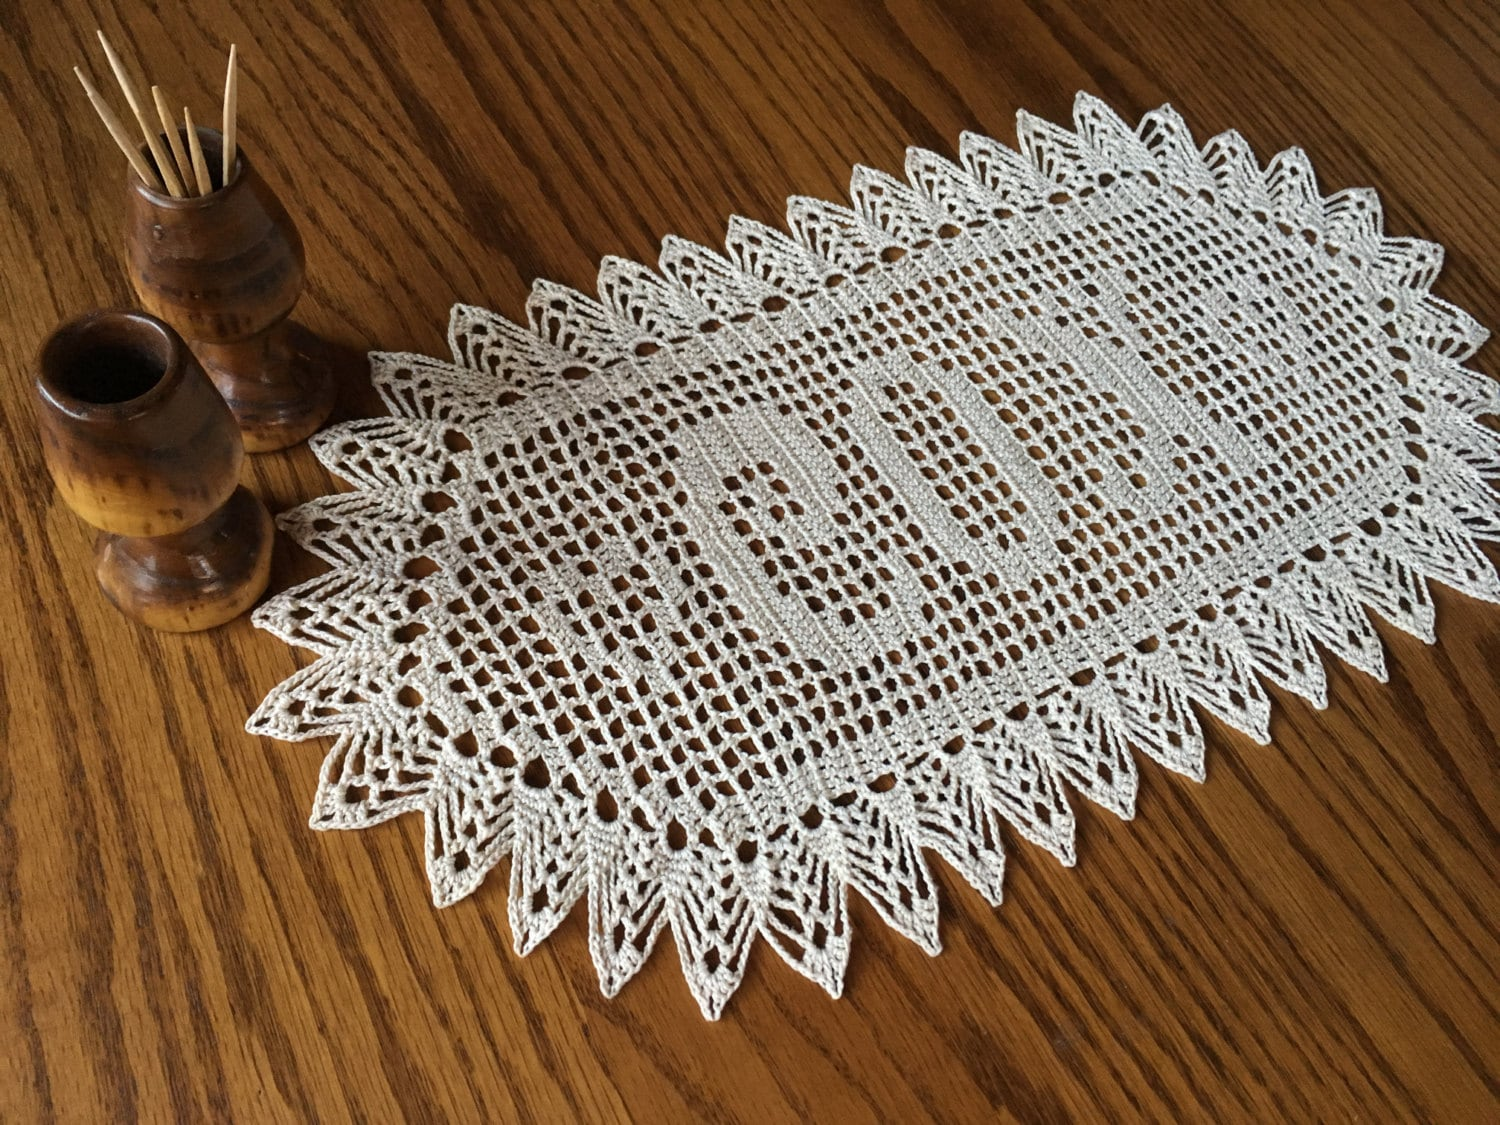 Crochet Wedding Gift: Personalized Crochet Wedding Gift Crochet Name Doily Unique